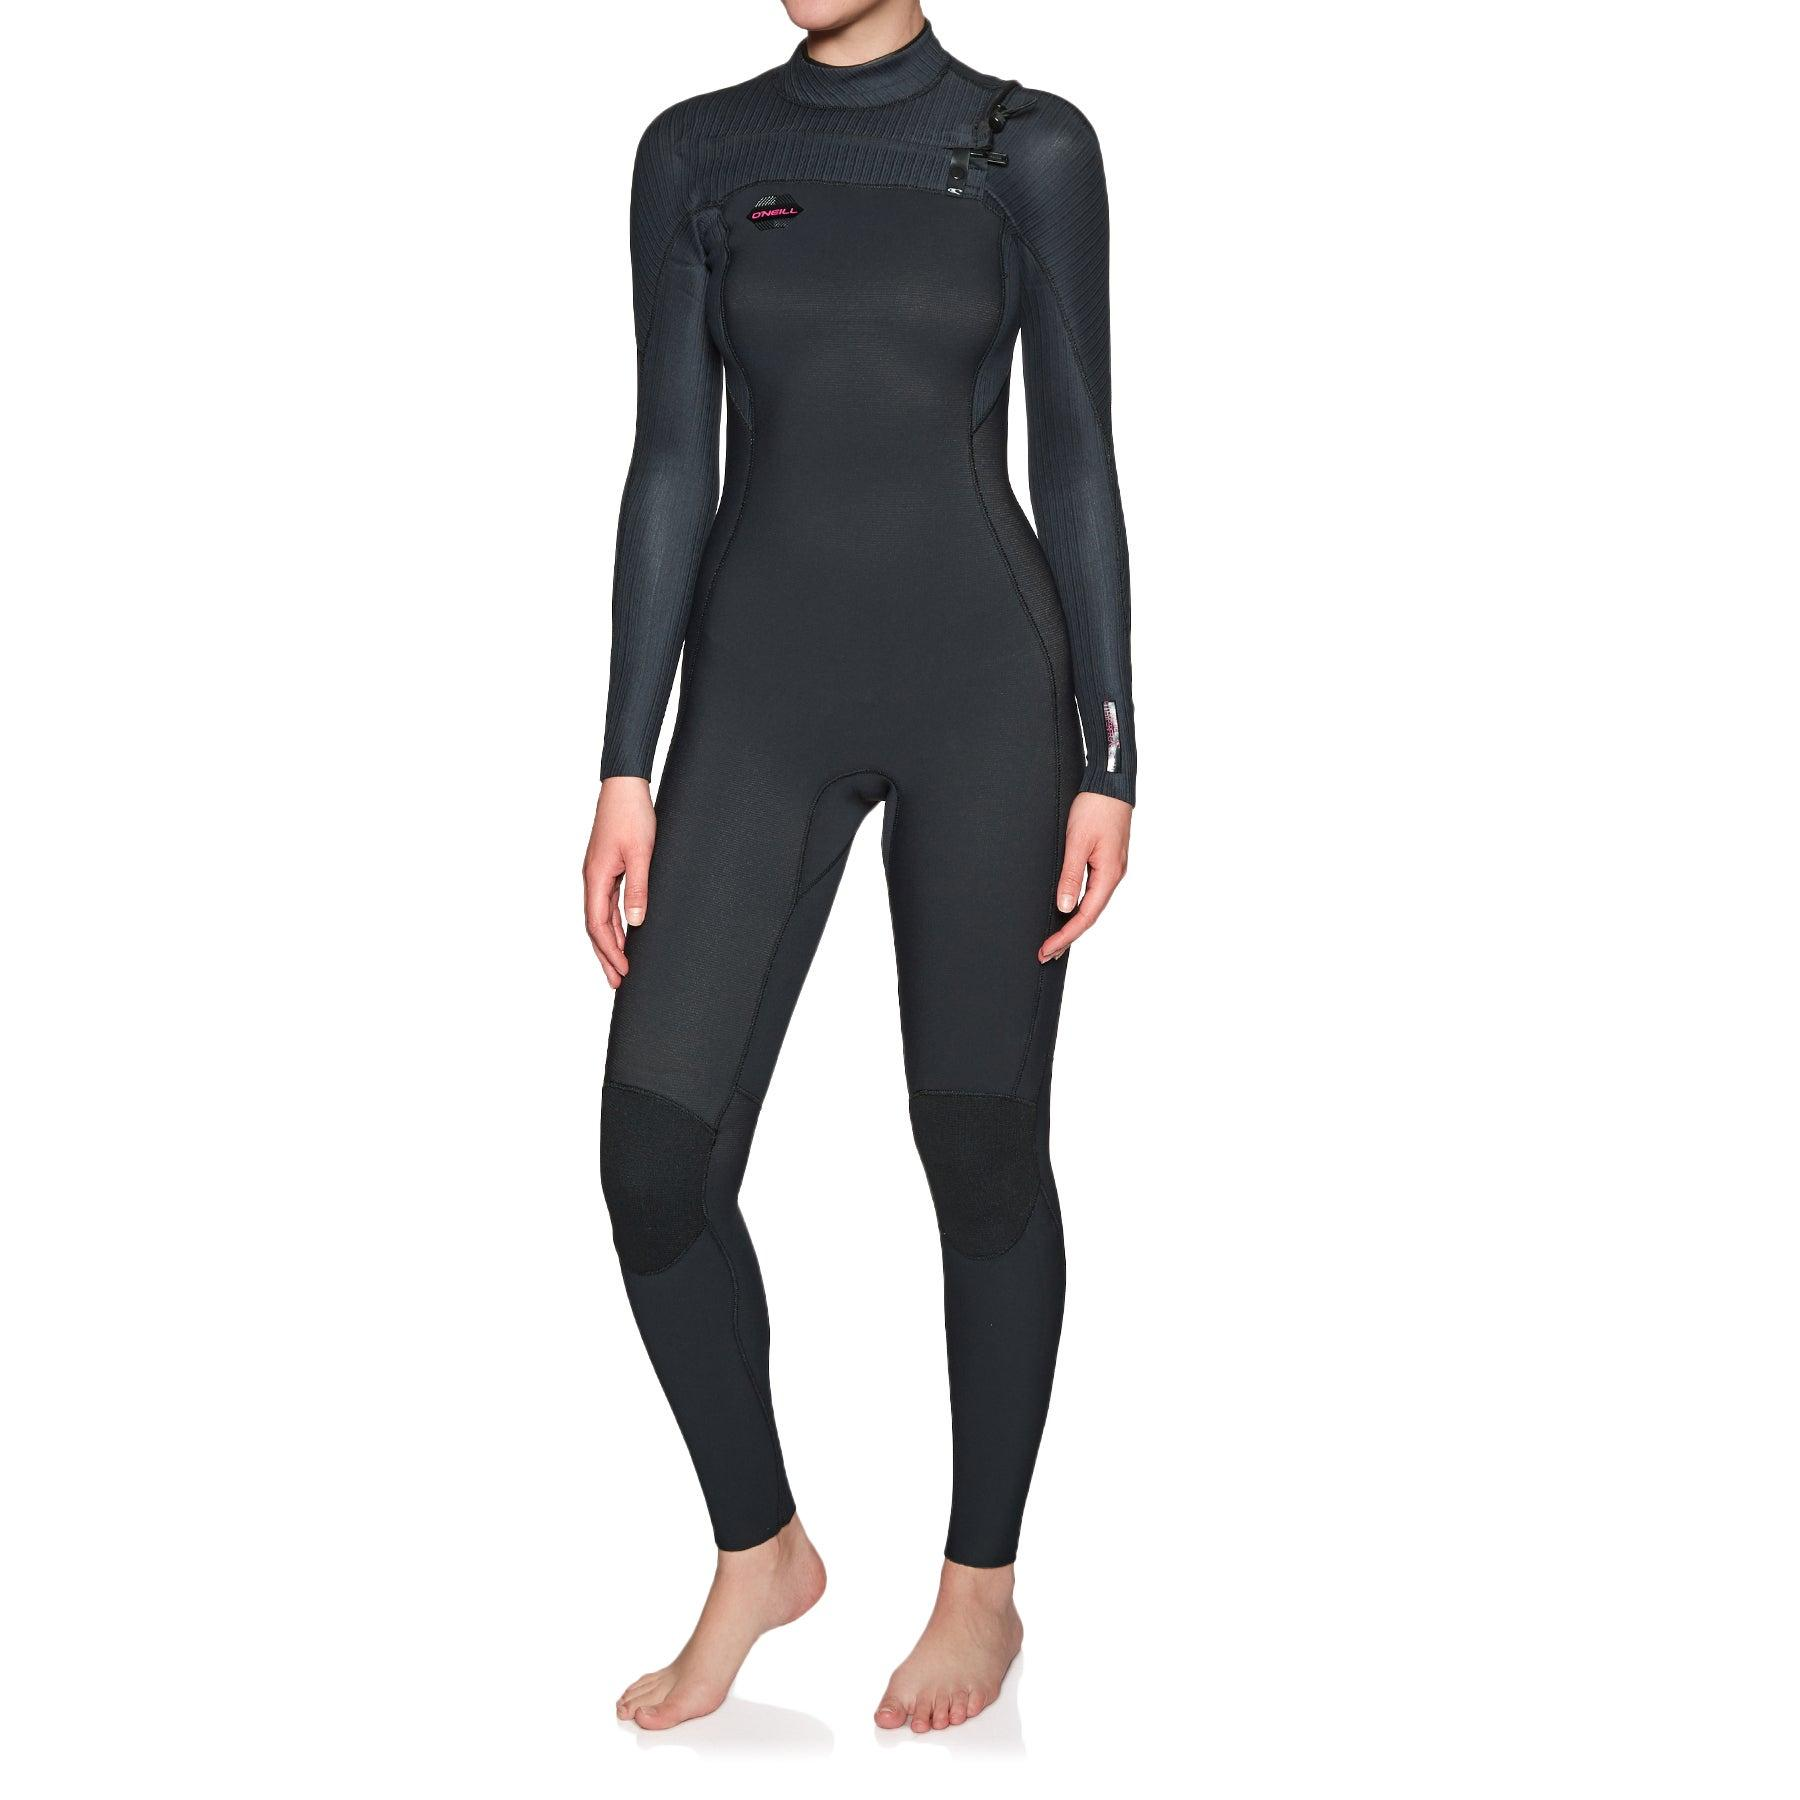 O'Neill Hyperfreak 3/2mm Chest Zip Full Wetsuit